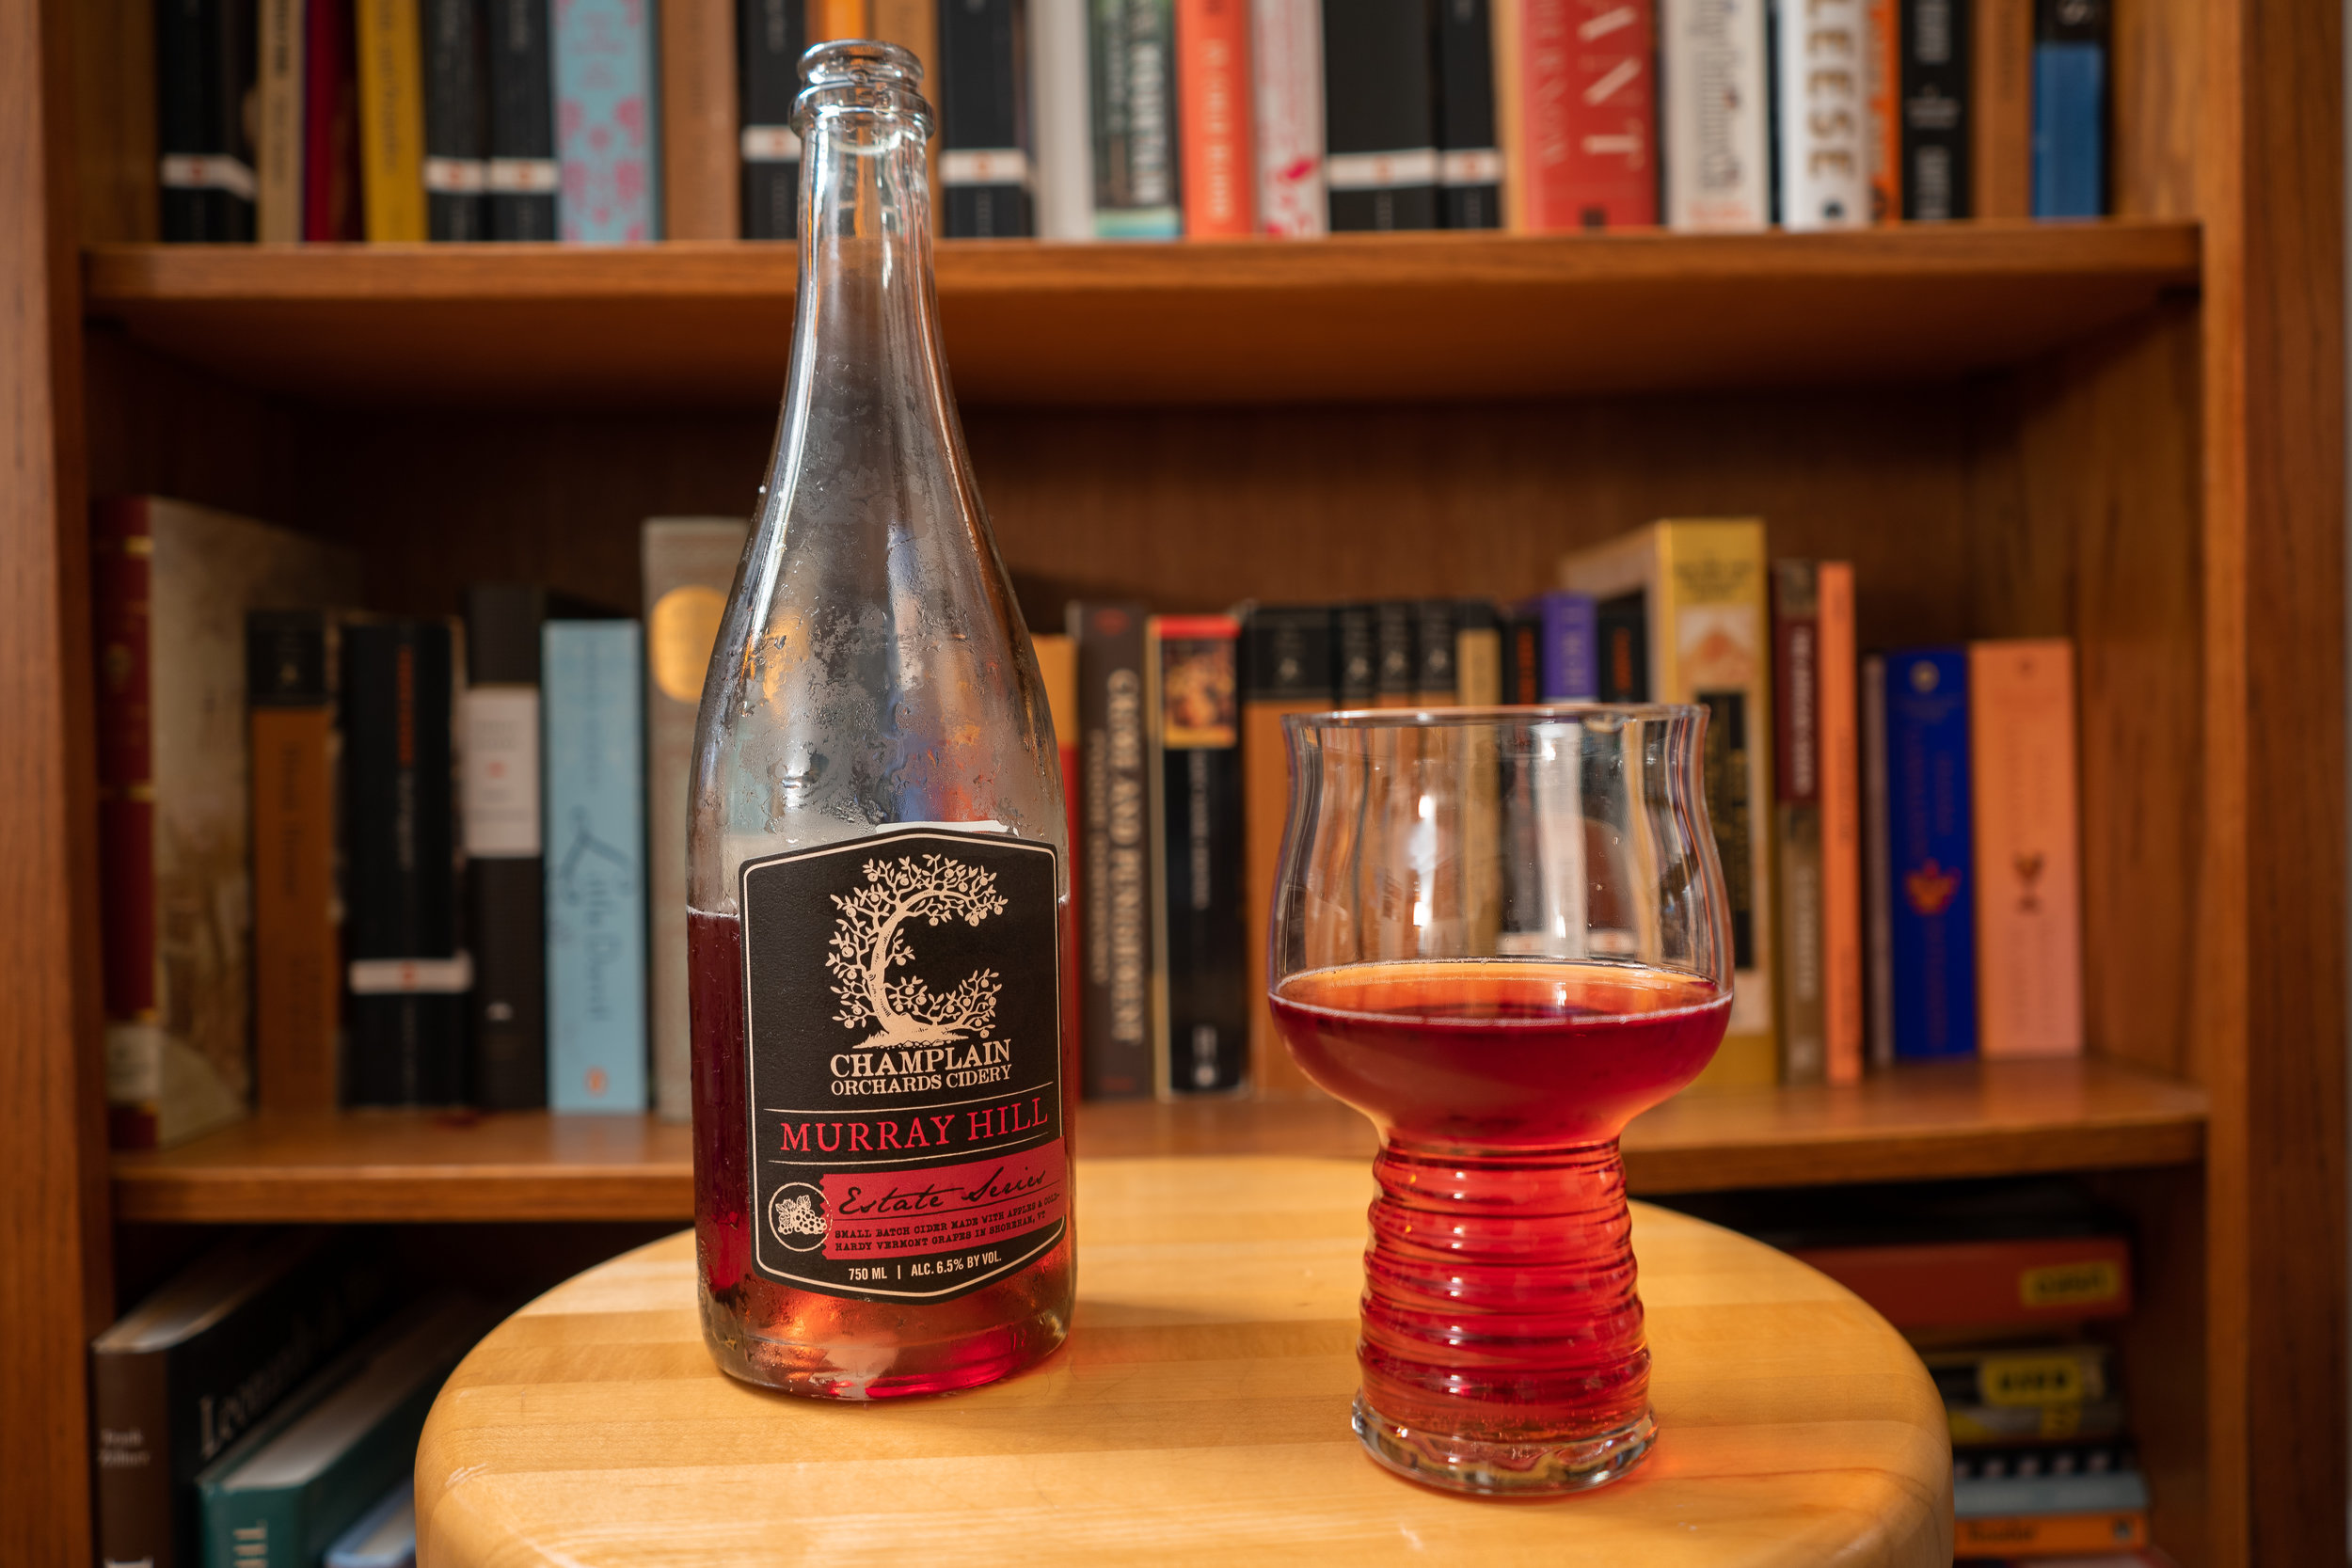 Champlain Orchards Cidery Estate Series Murray Hill